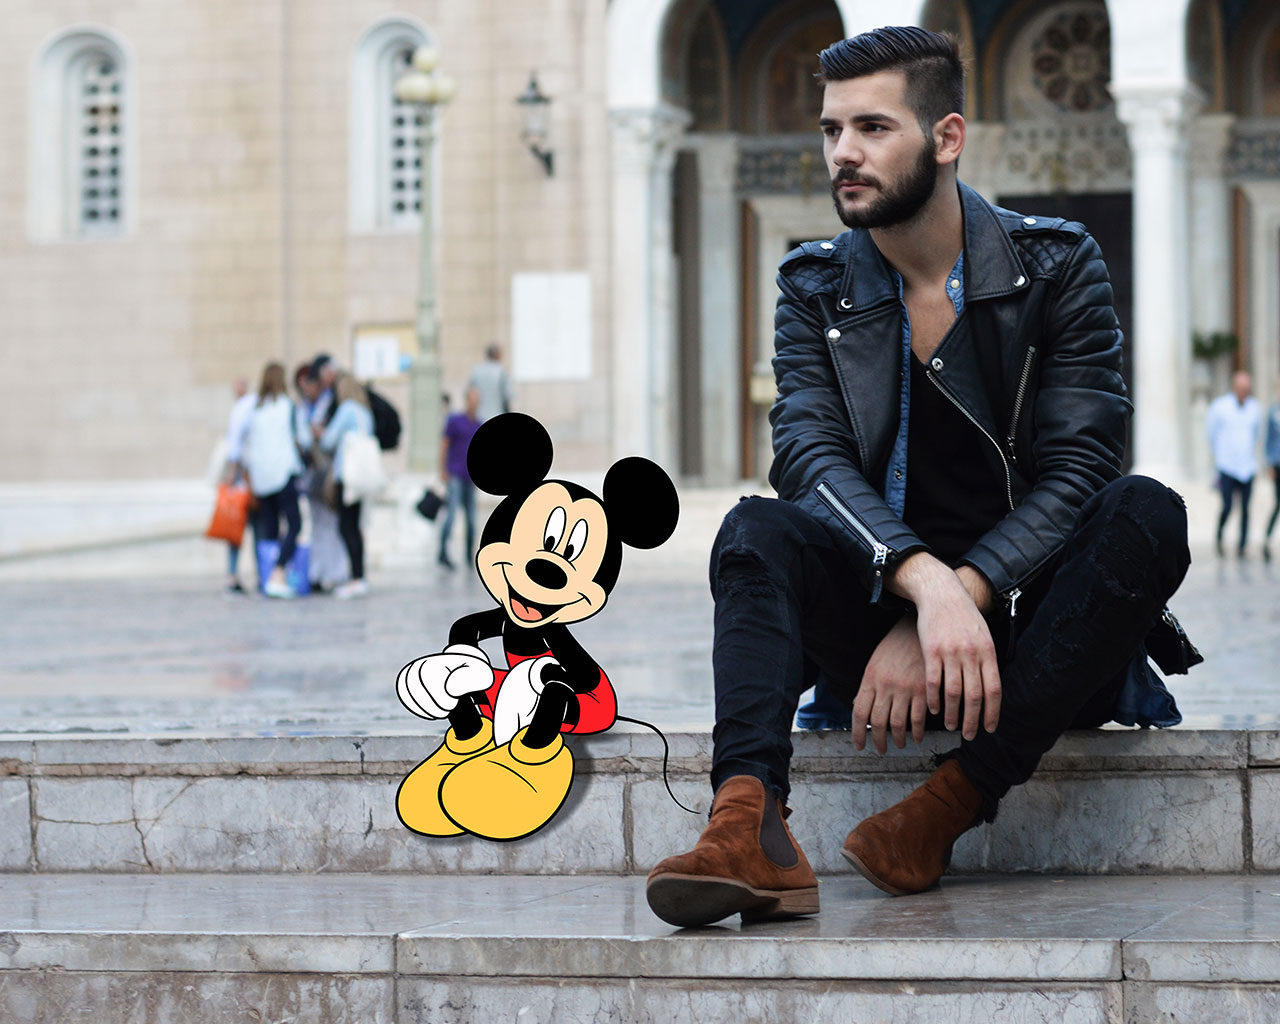 Gregory Masouras portrait with Mickey mouse. Photo © Gregory Masouras.